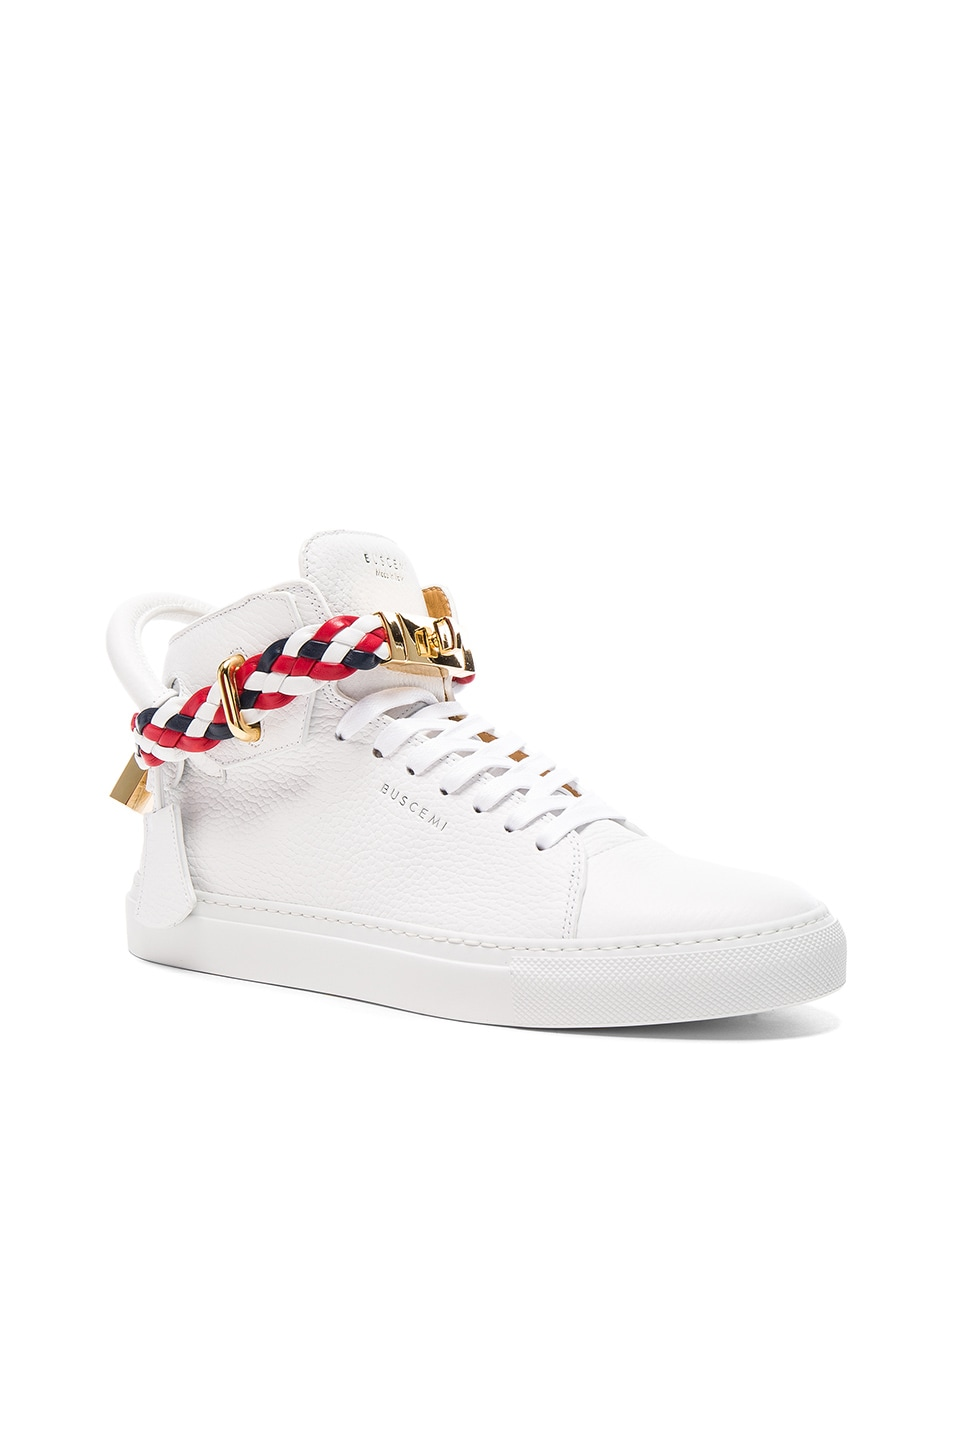 81227ade5b9659 Image 1 of Buscemi 100MM High Top Belt Weave Pebbled Leather Sneakers in  White   Multi